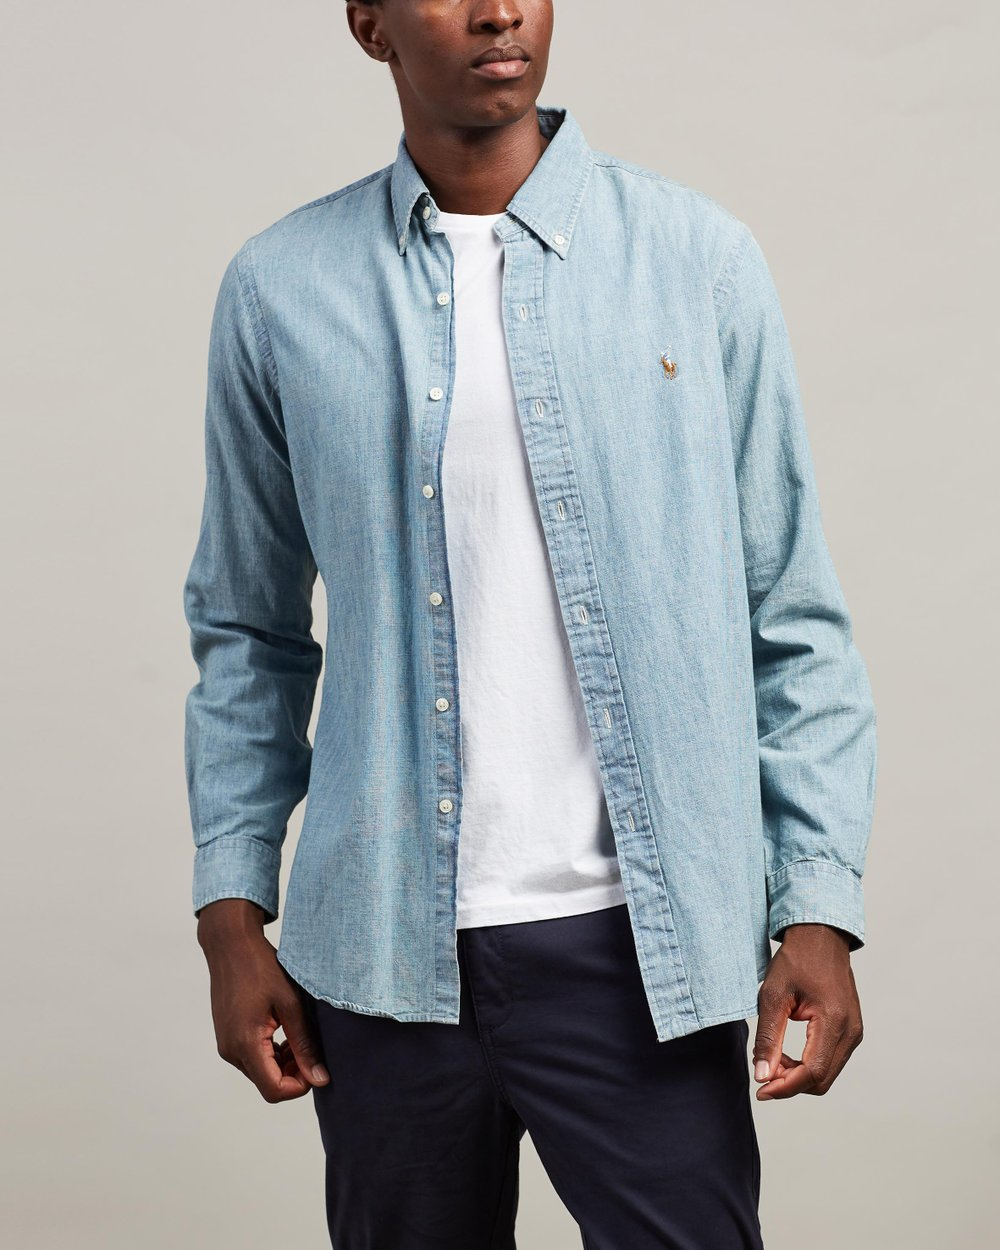 Casual Shirts | Mens Casual Shirt Online | Buy Casual Shirts ...